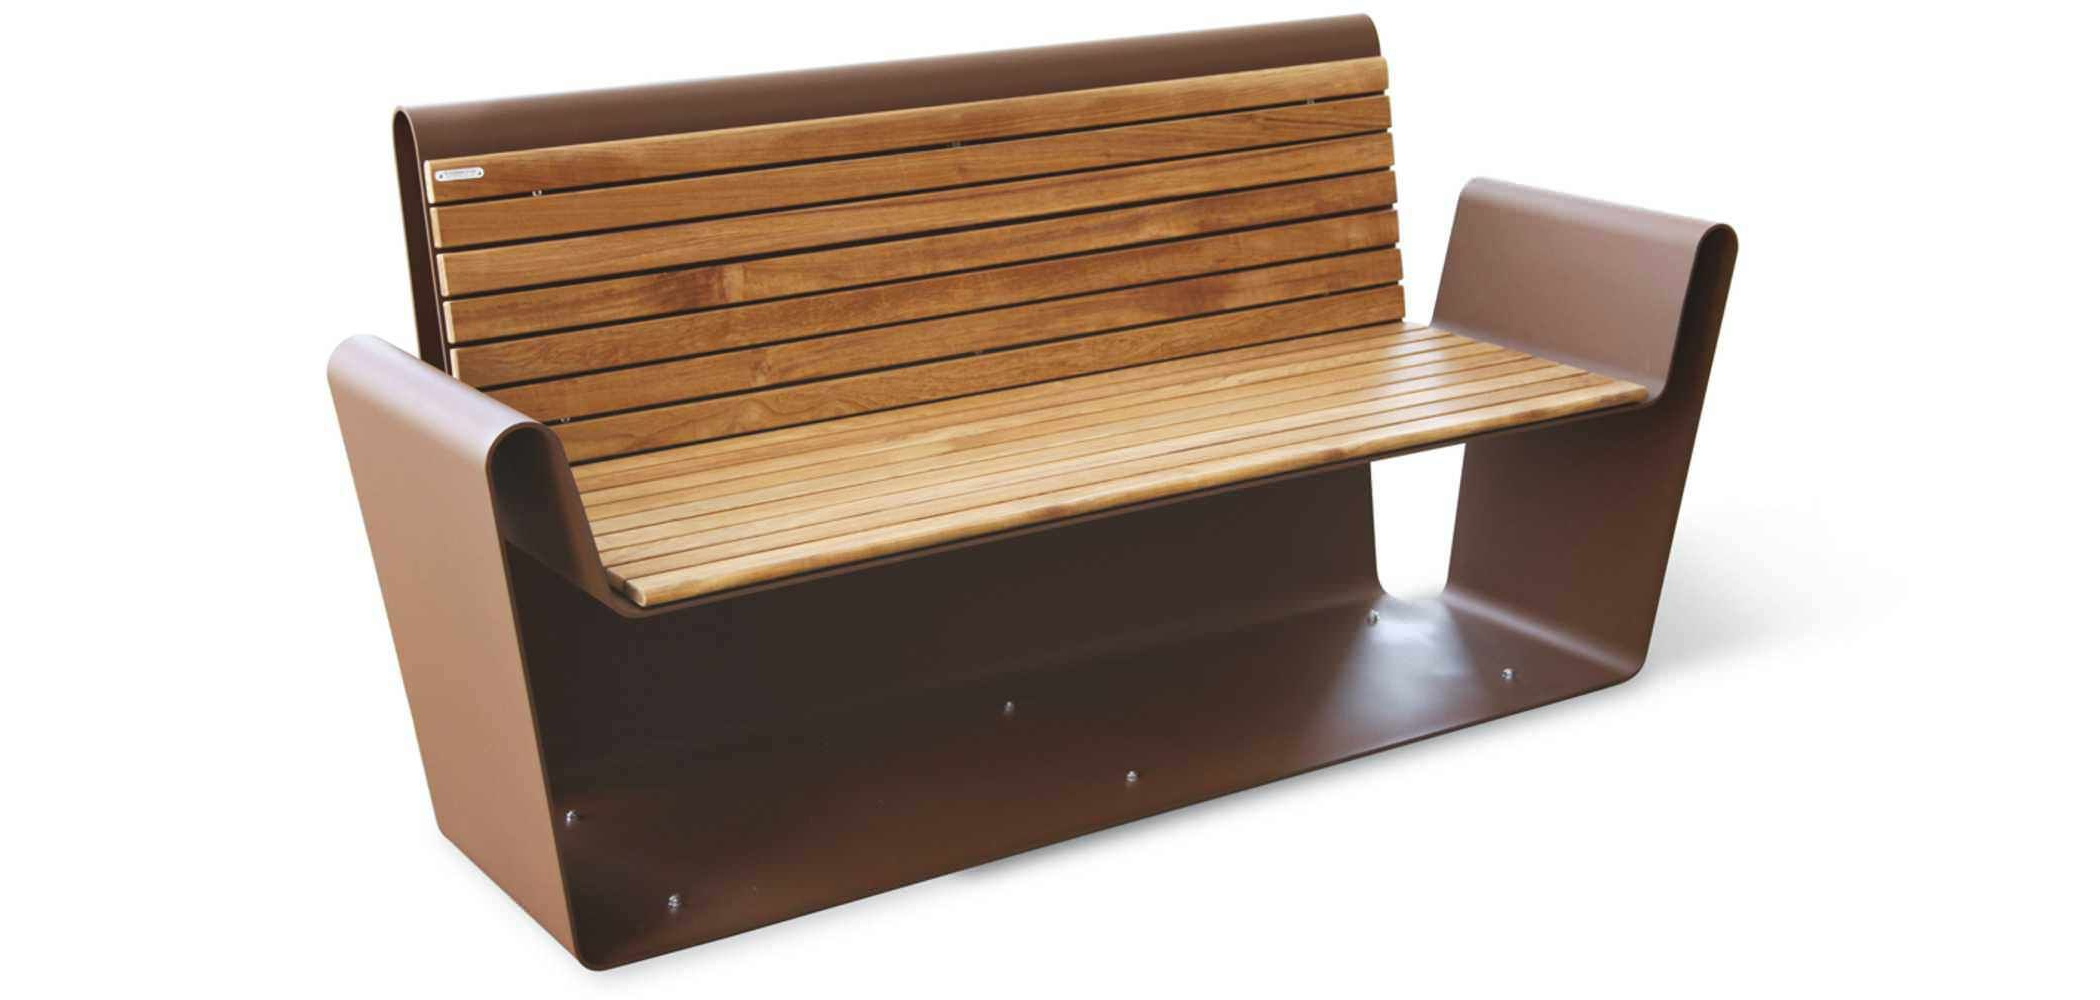 Most Recently Released Krystal Ergonomic Metal Garden Benches Intended For Public Bench / Contemporary / Stainless Steel / Modular (View 16 of 30)